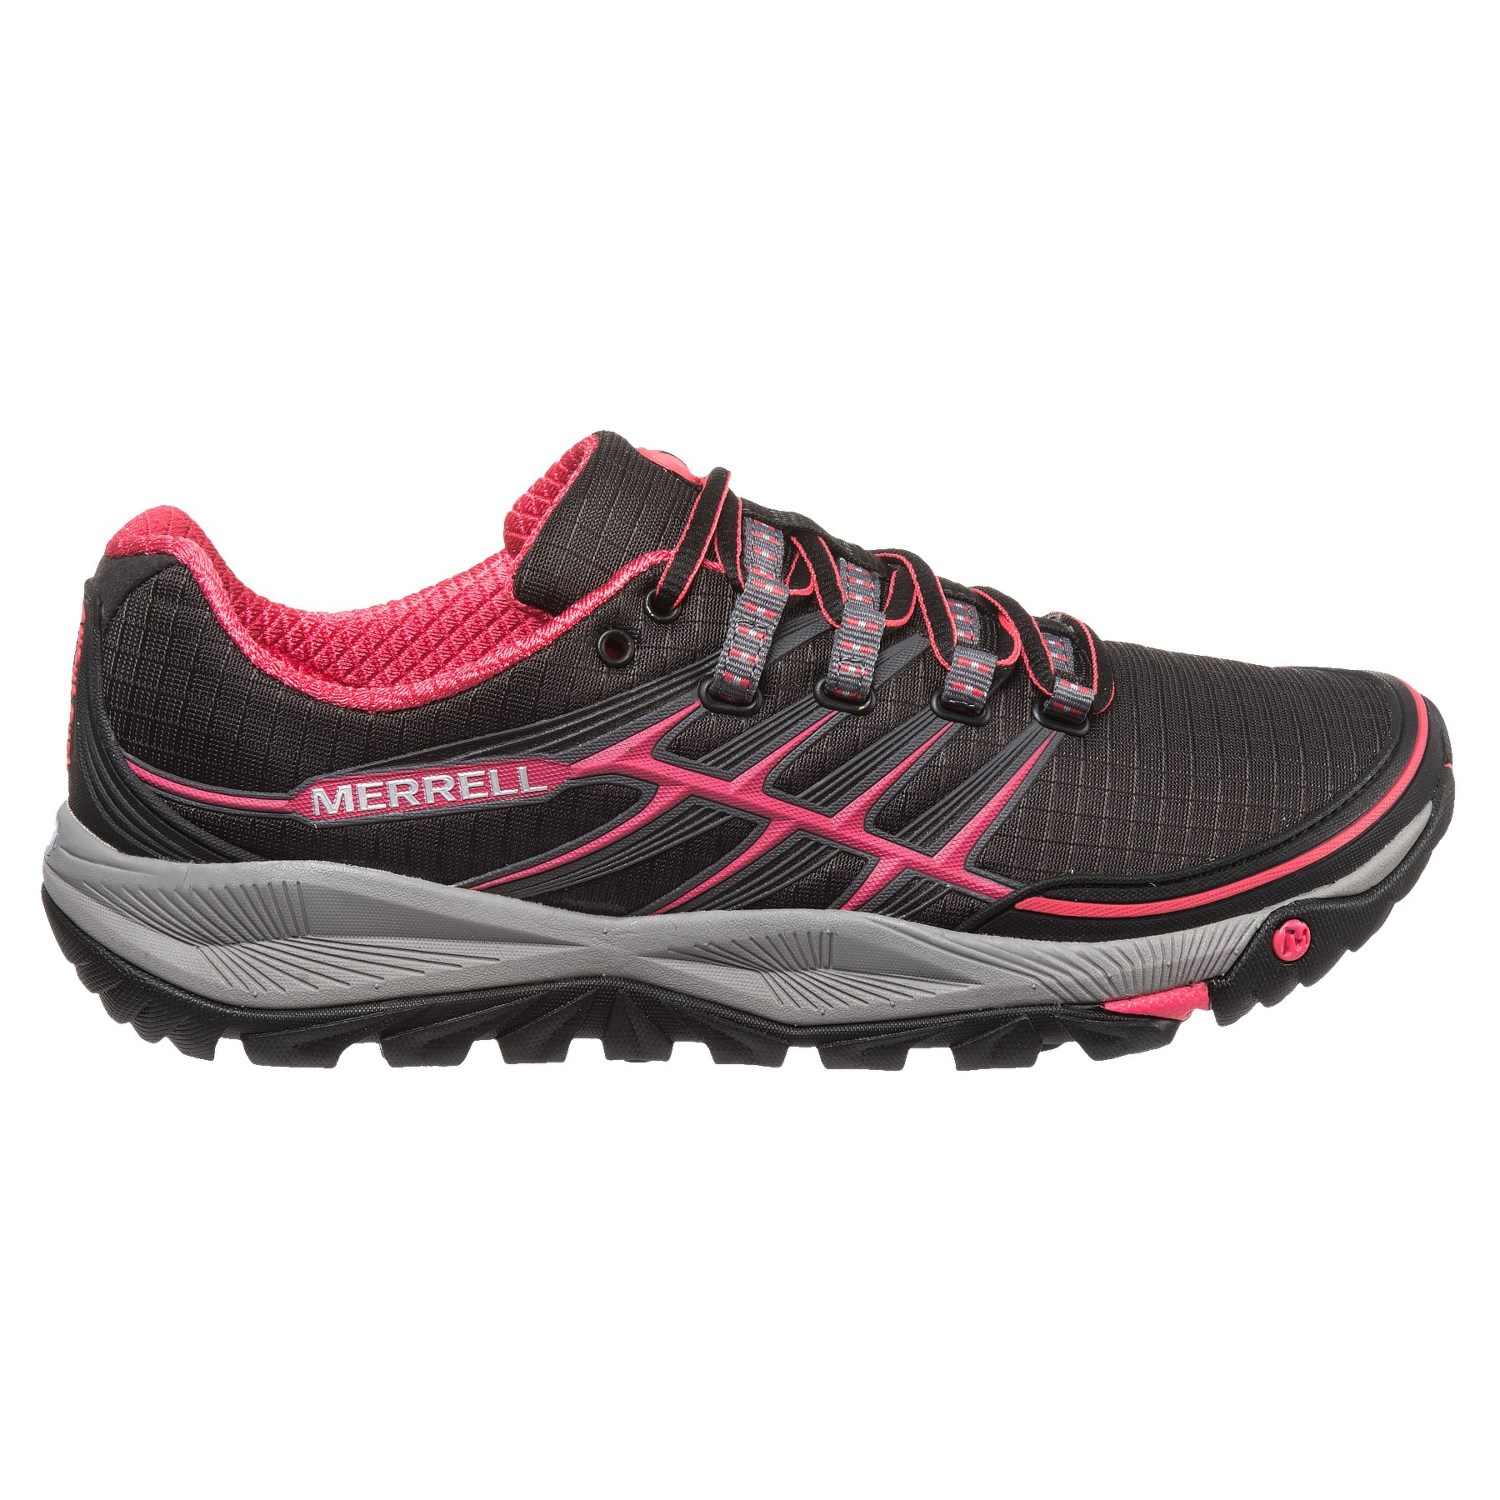 Are Merrell Trail Running Shoes Good